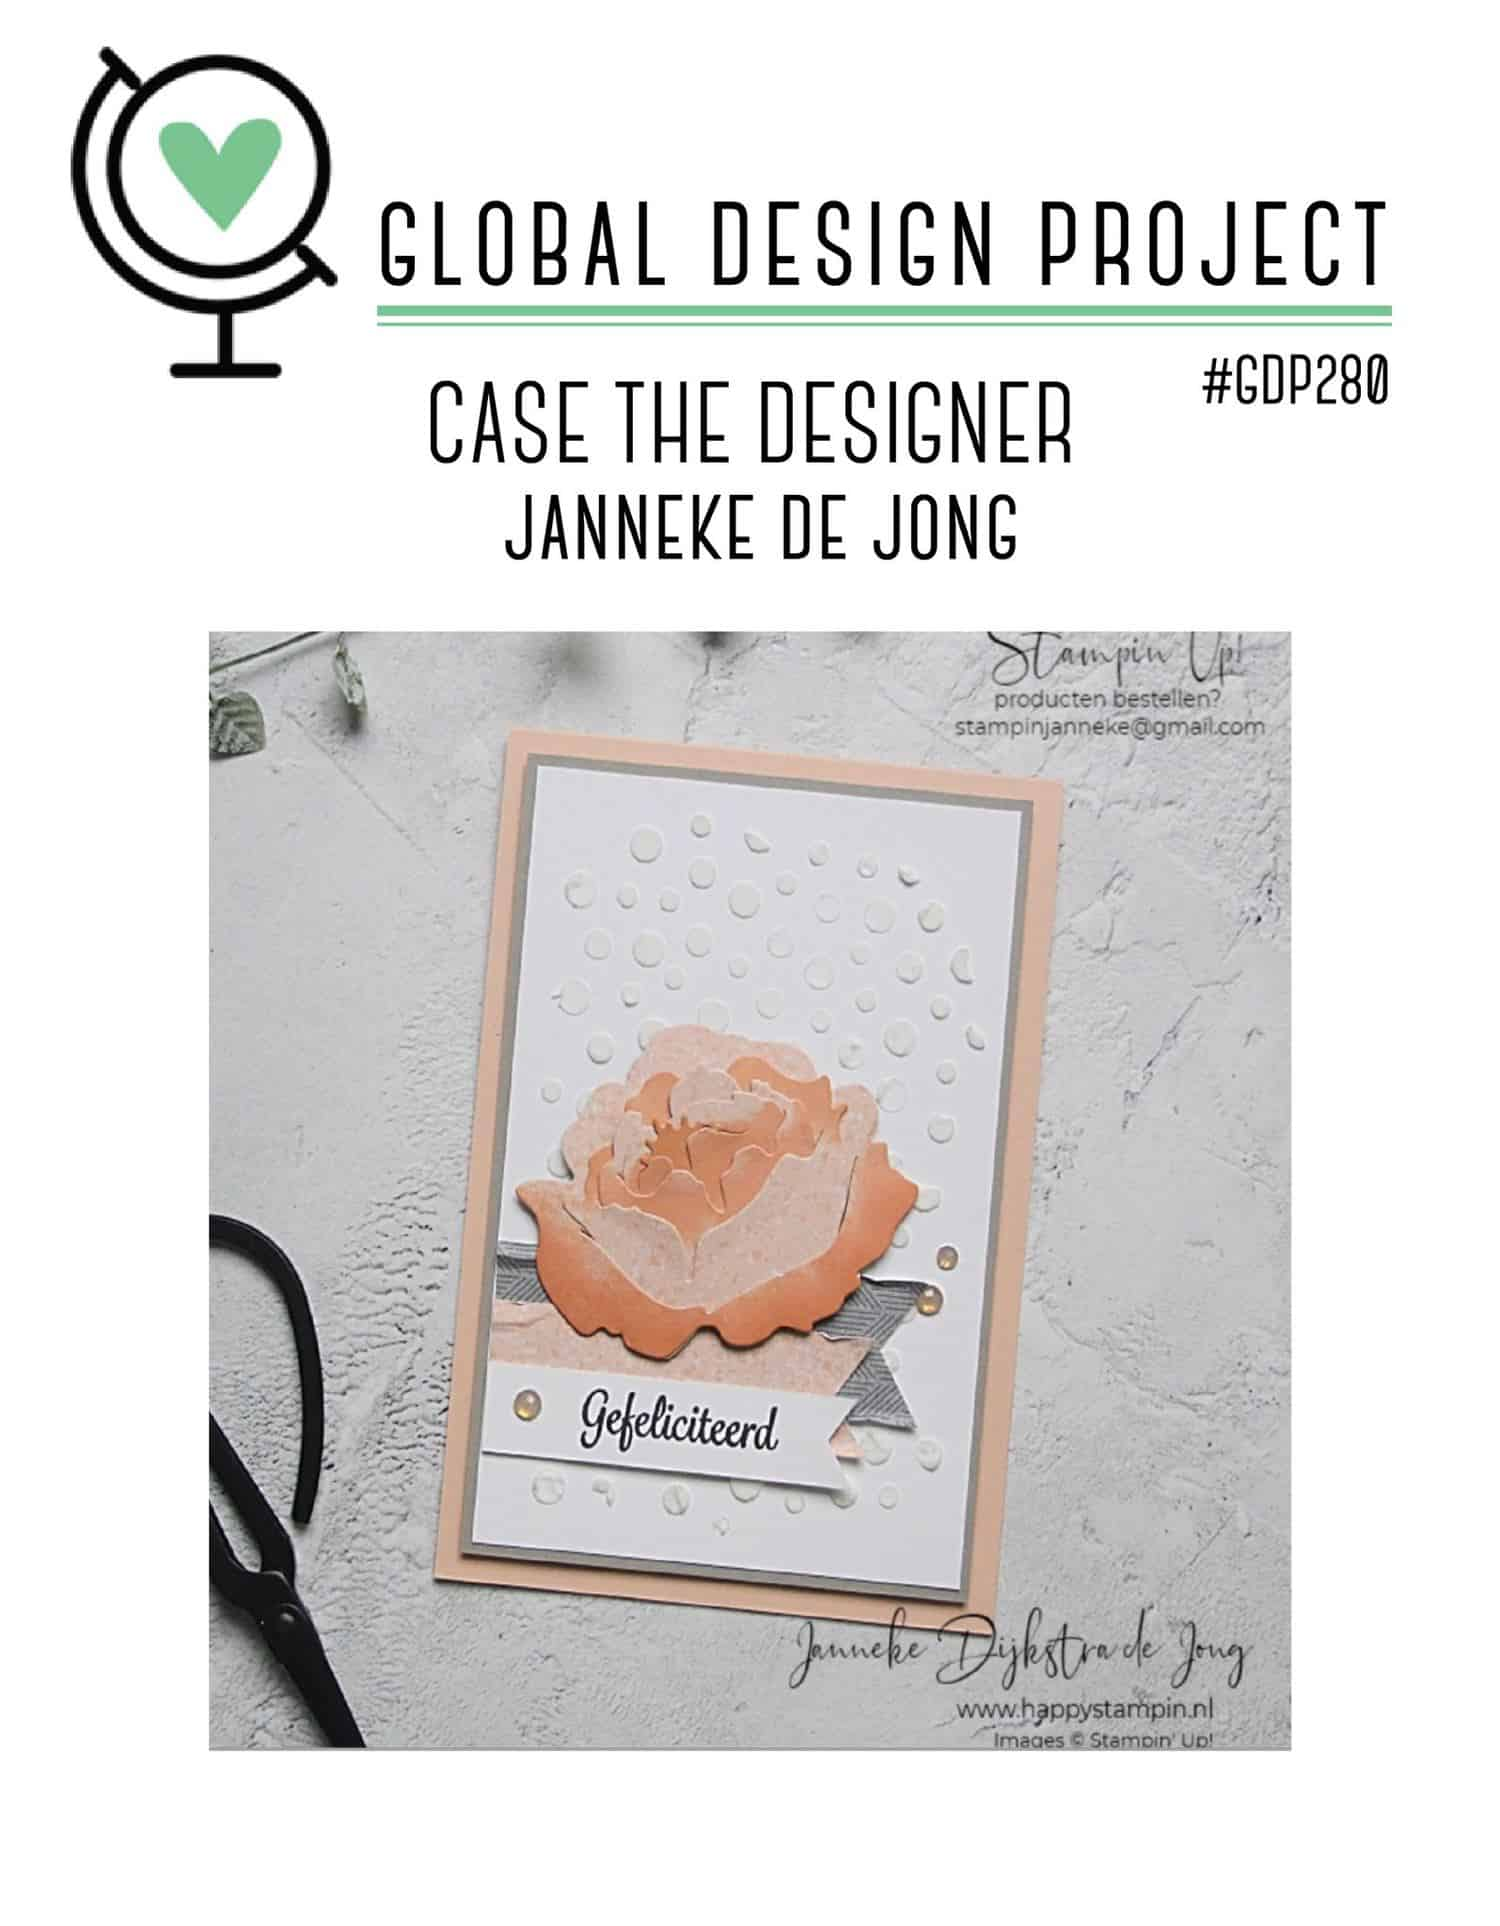 Global Design Project 280